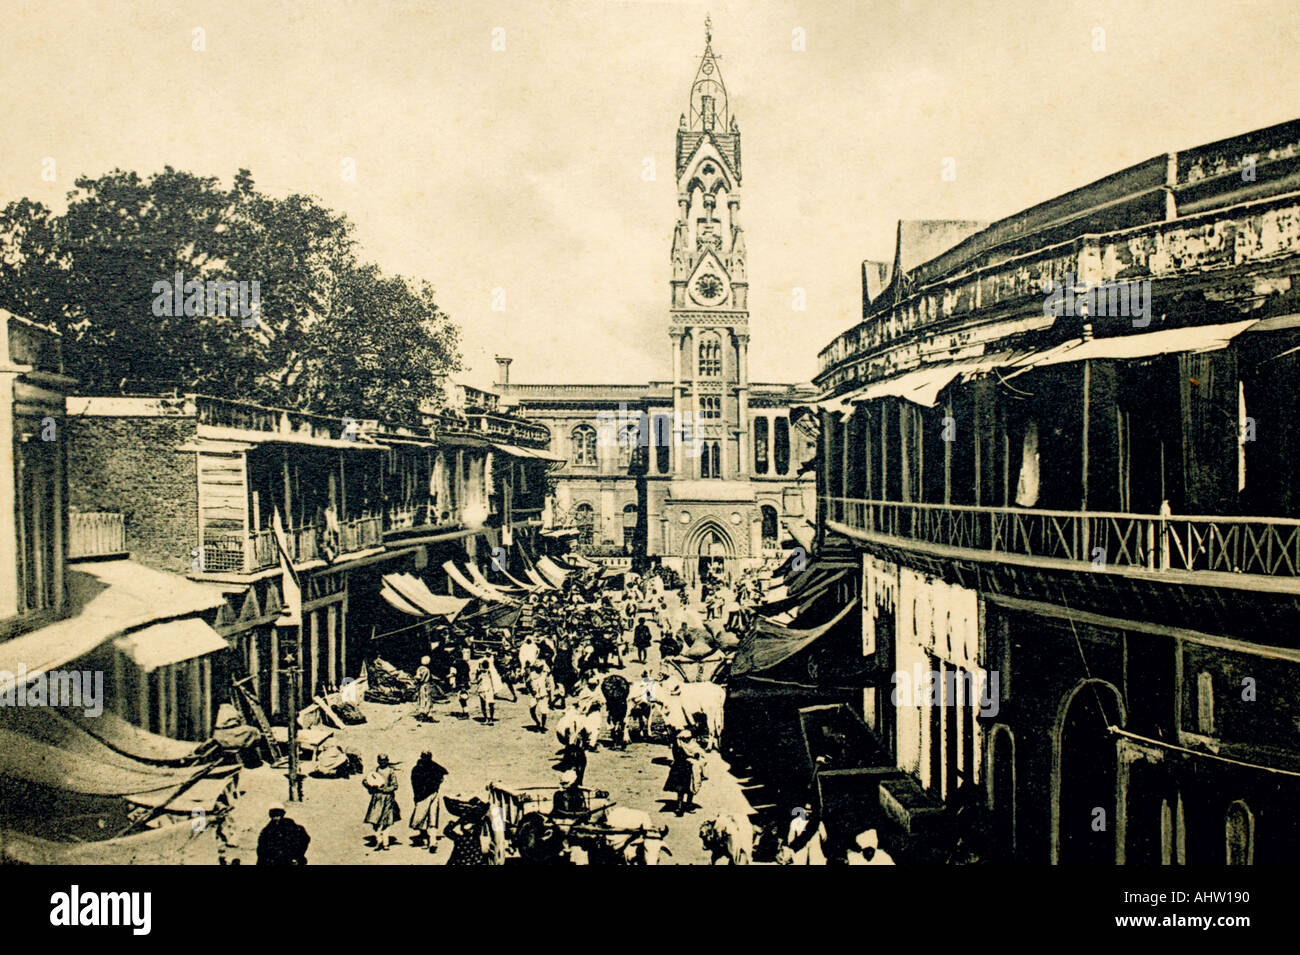 AAD 91700 Old print of Indian Clock Tower and Town Hall Chandni Chowk Delhi INDIA - Stock Image